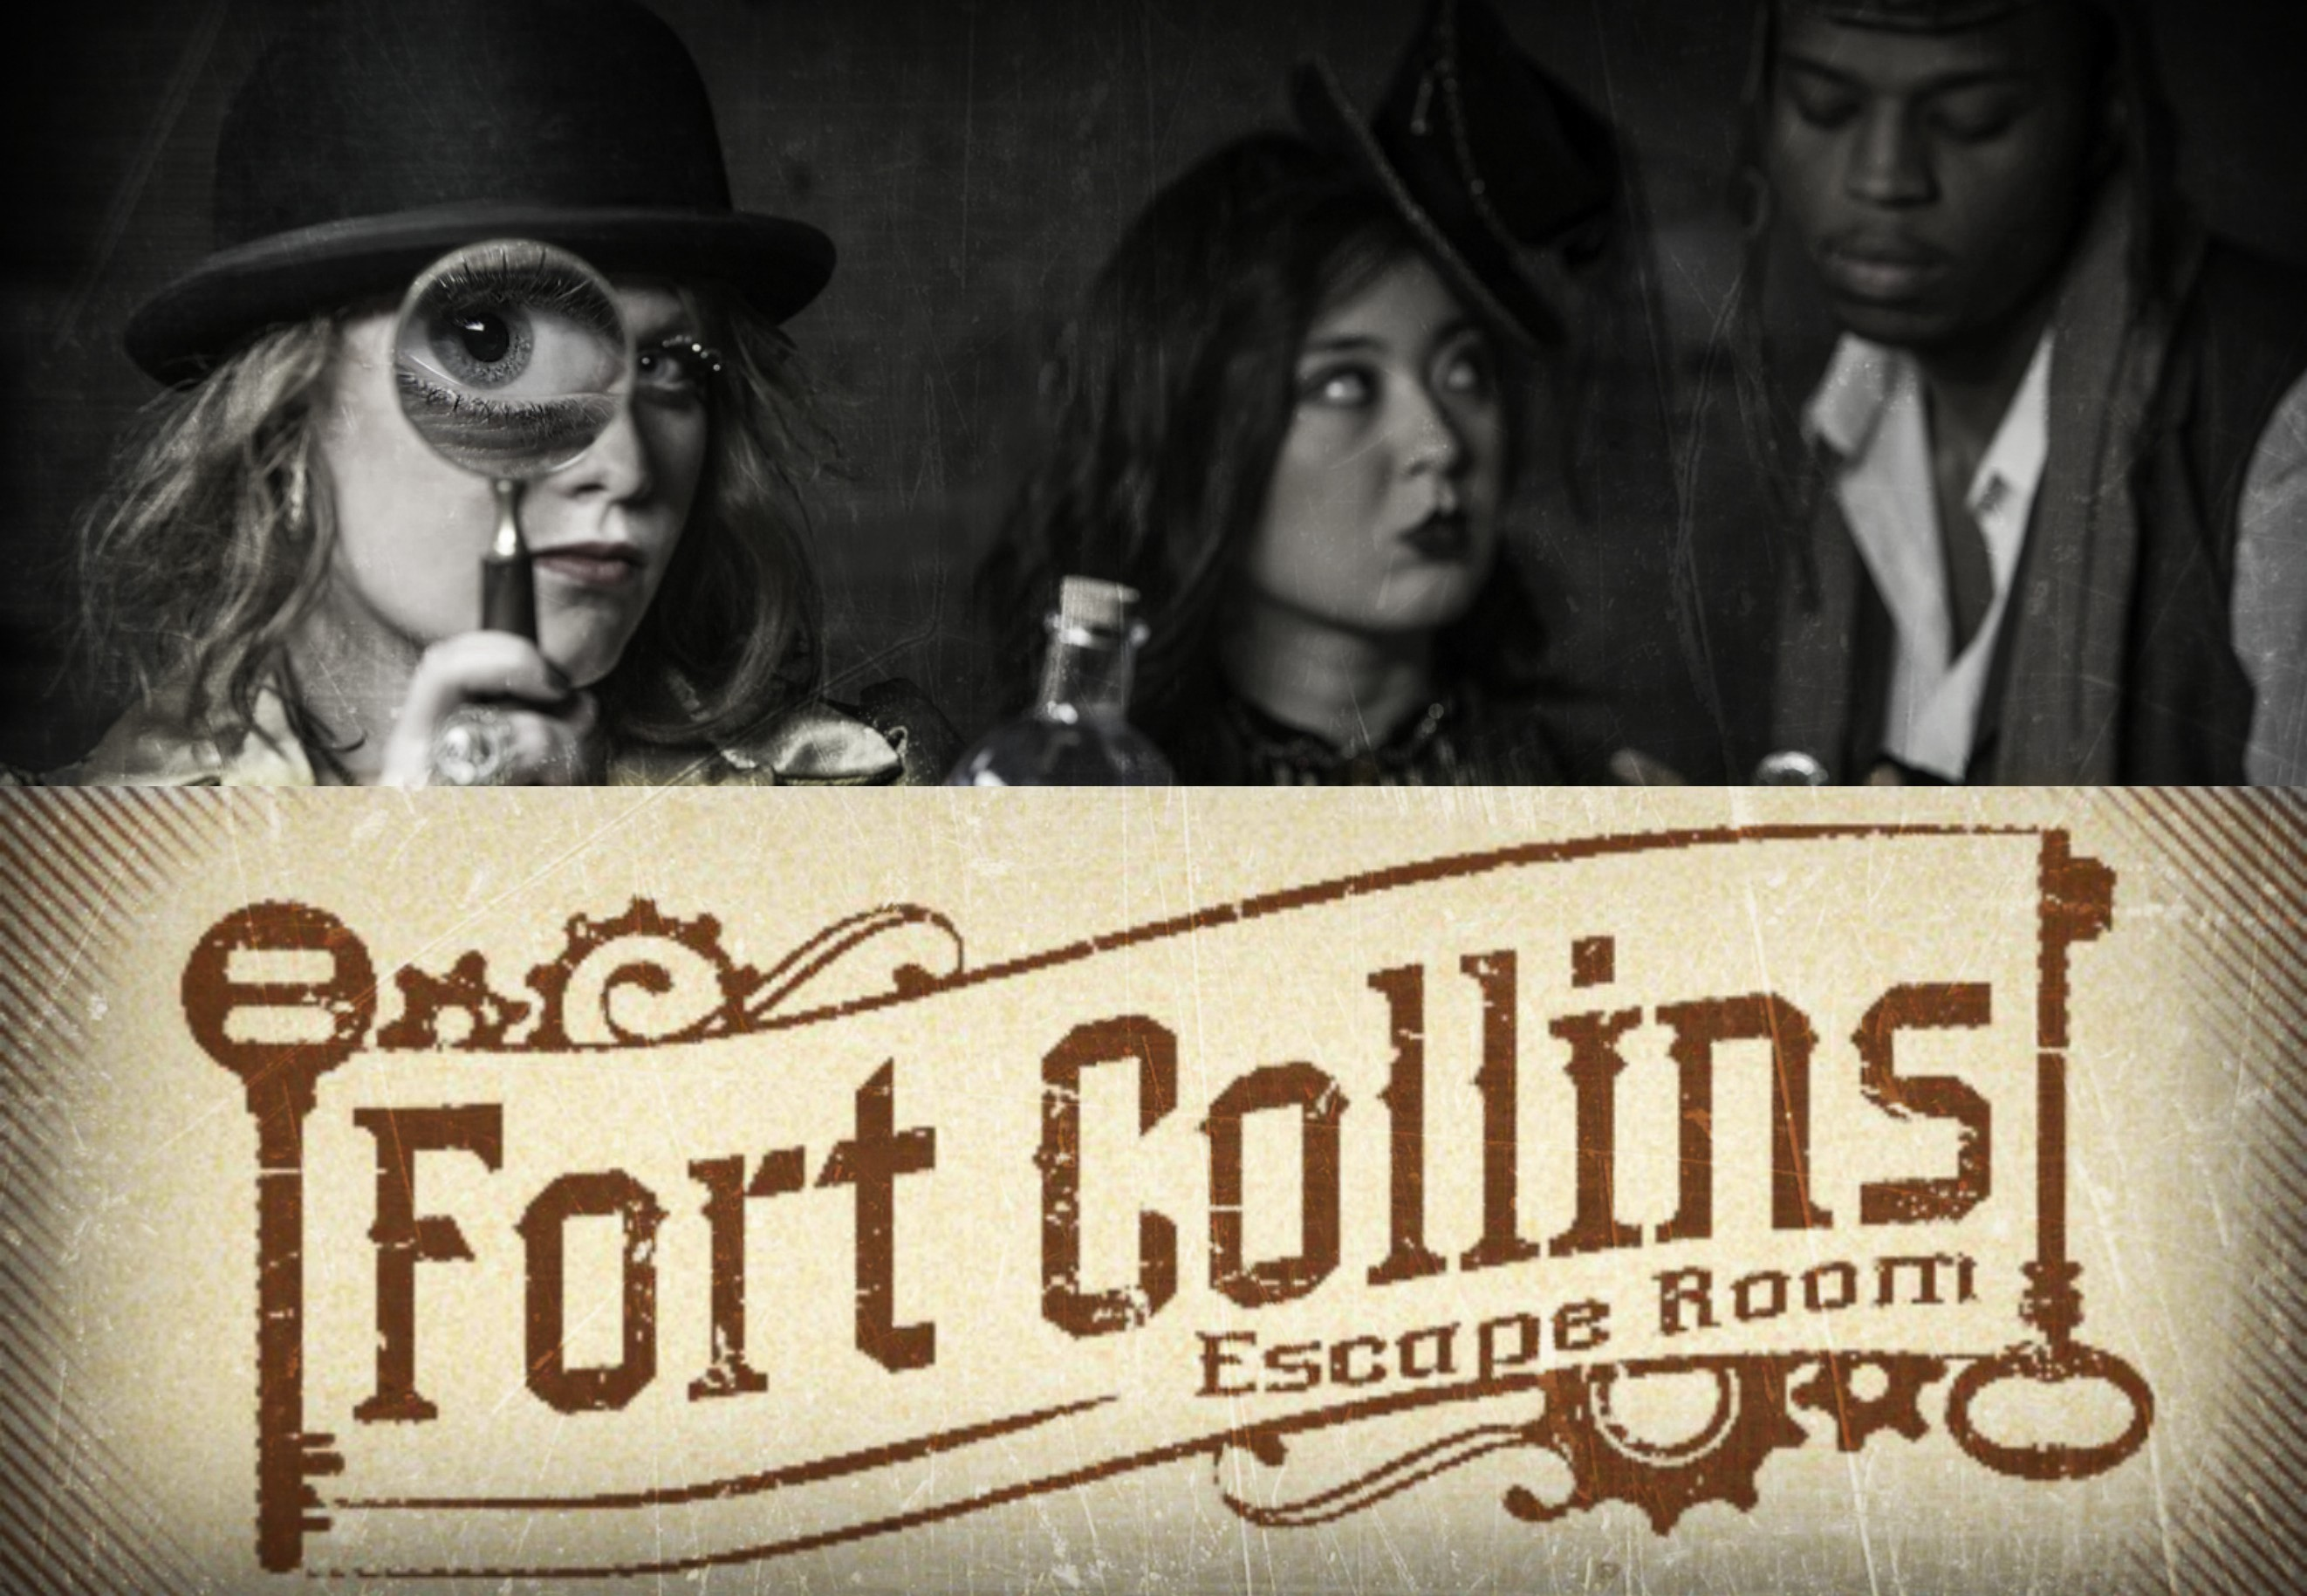 Fort collins things to do